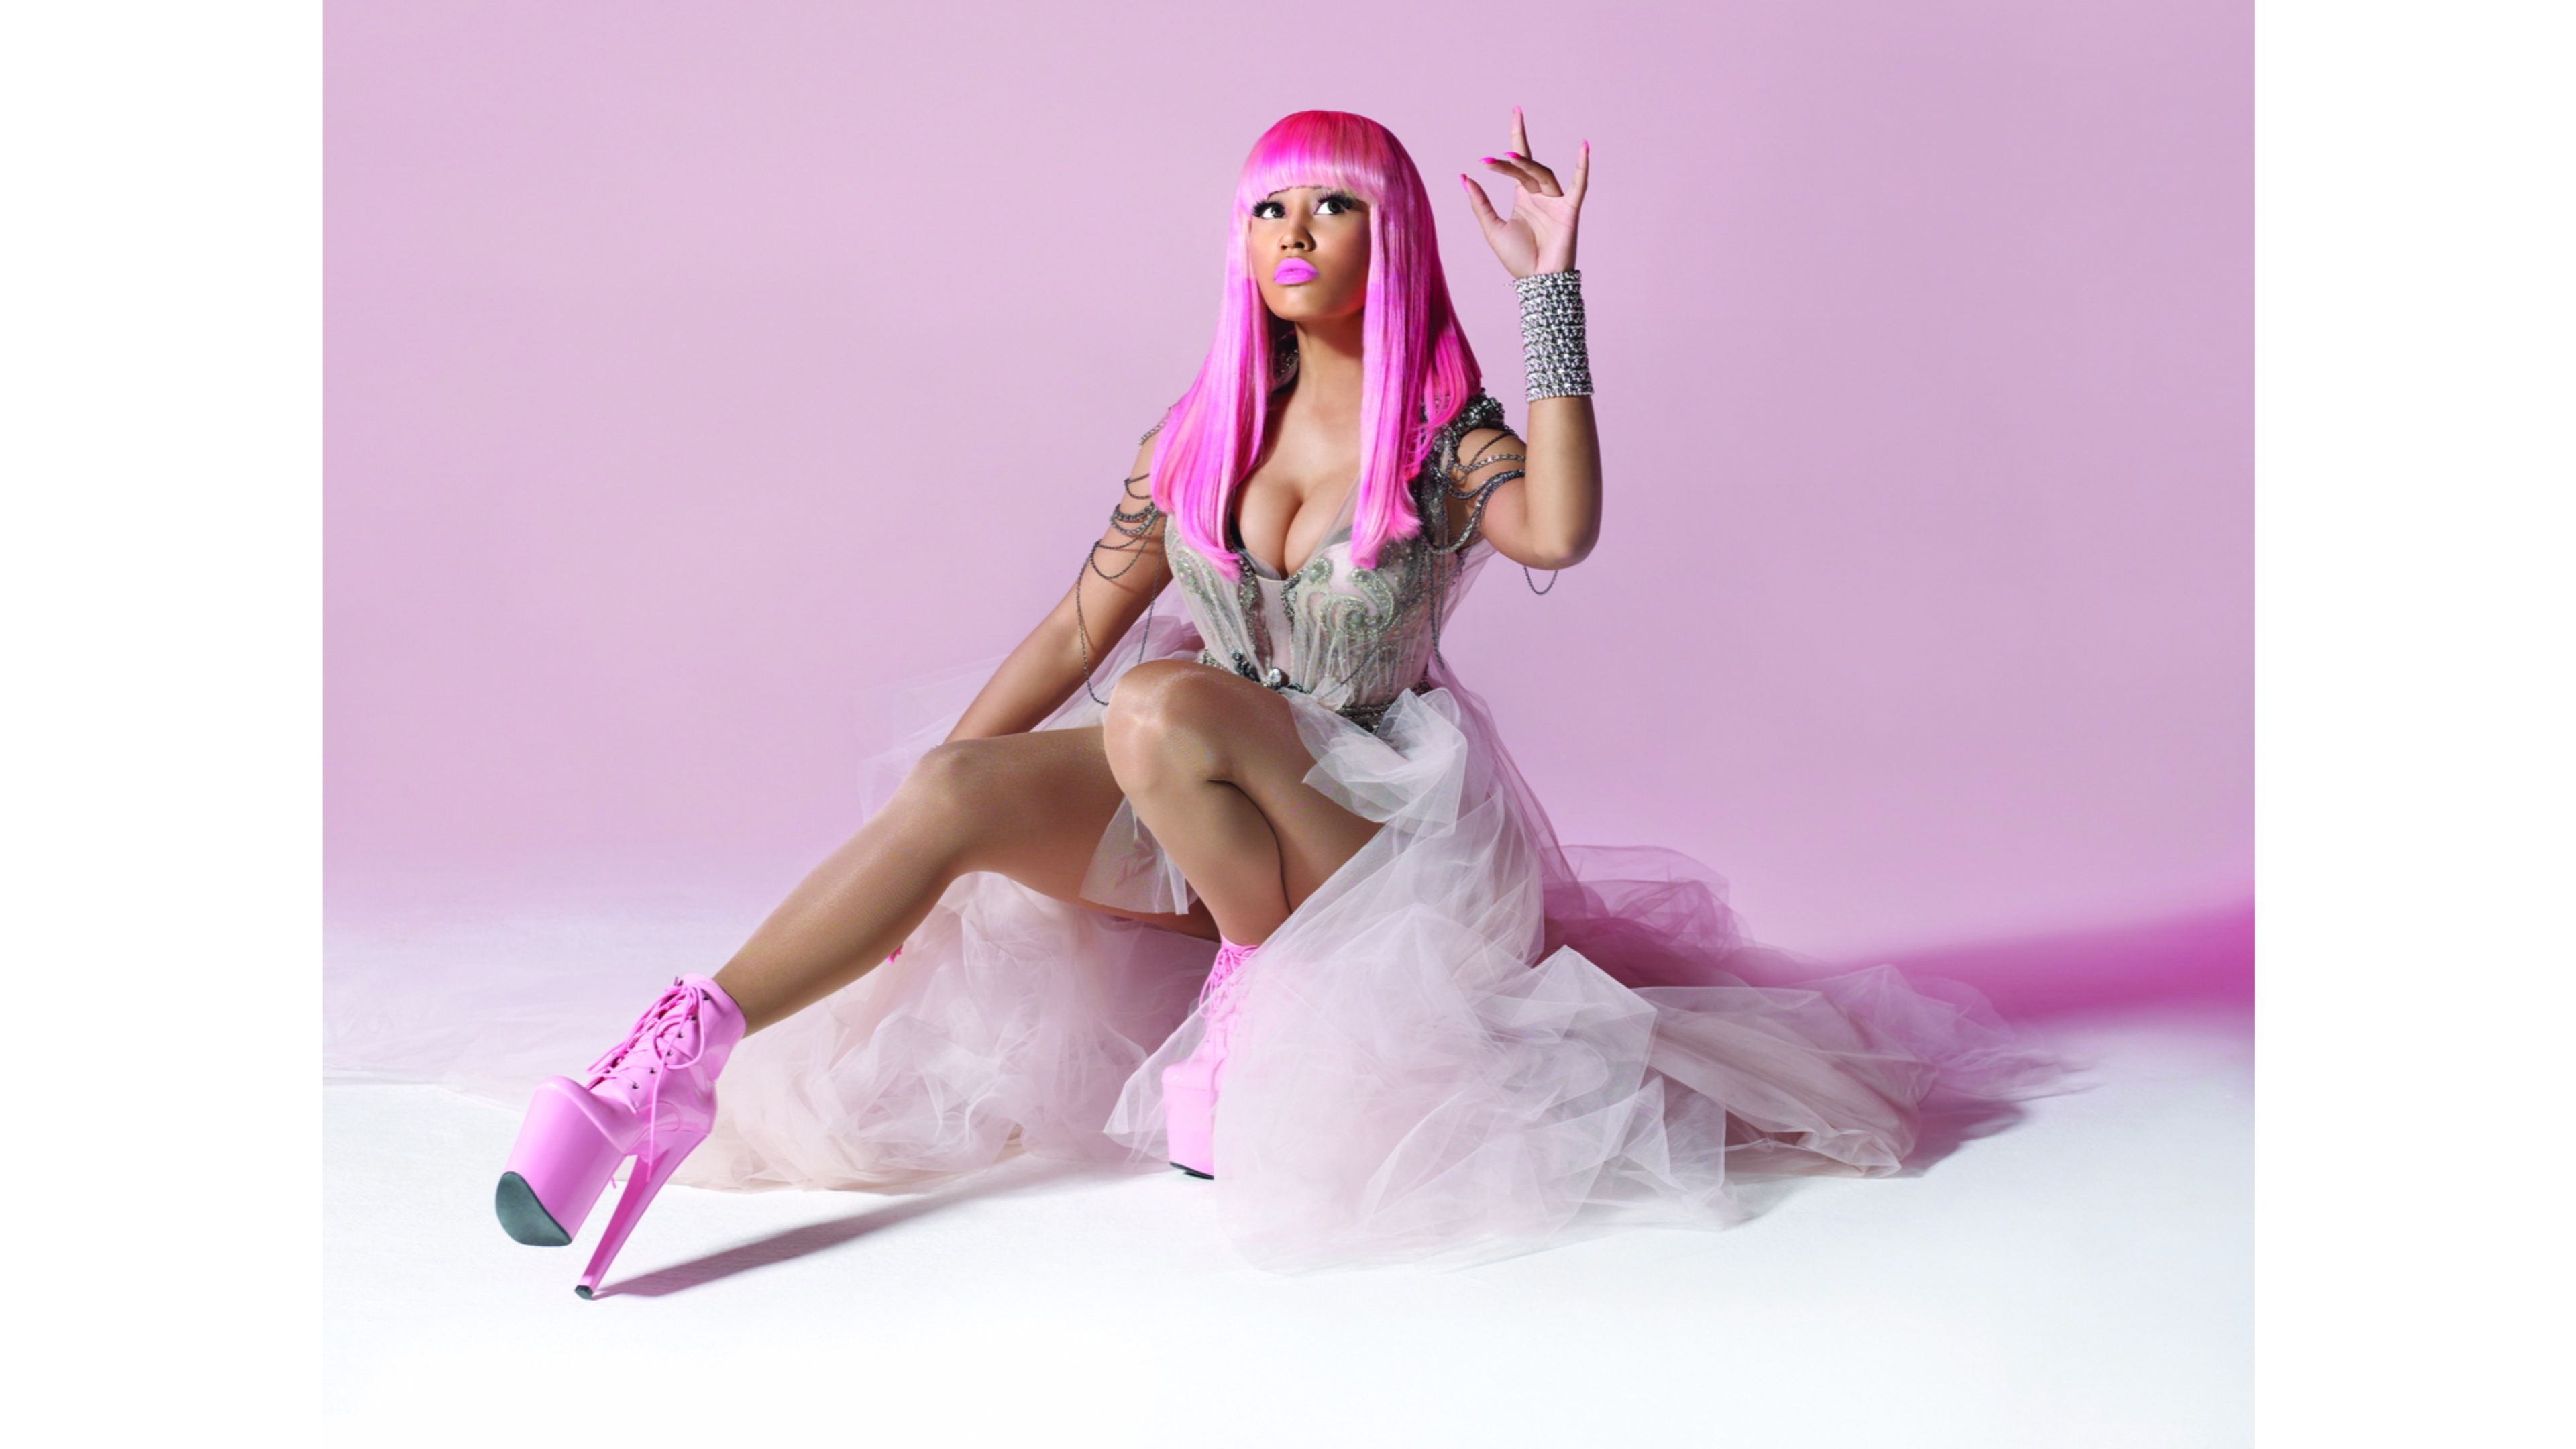 Download 4K Nicki Minaj Wallpaper 4K Wallpaper 3840x2160